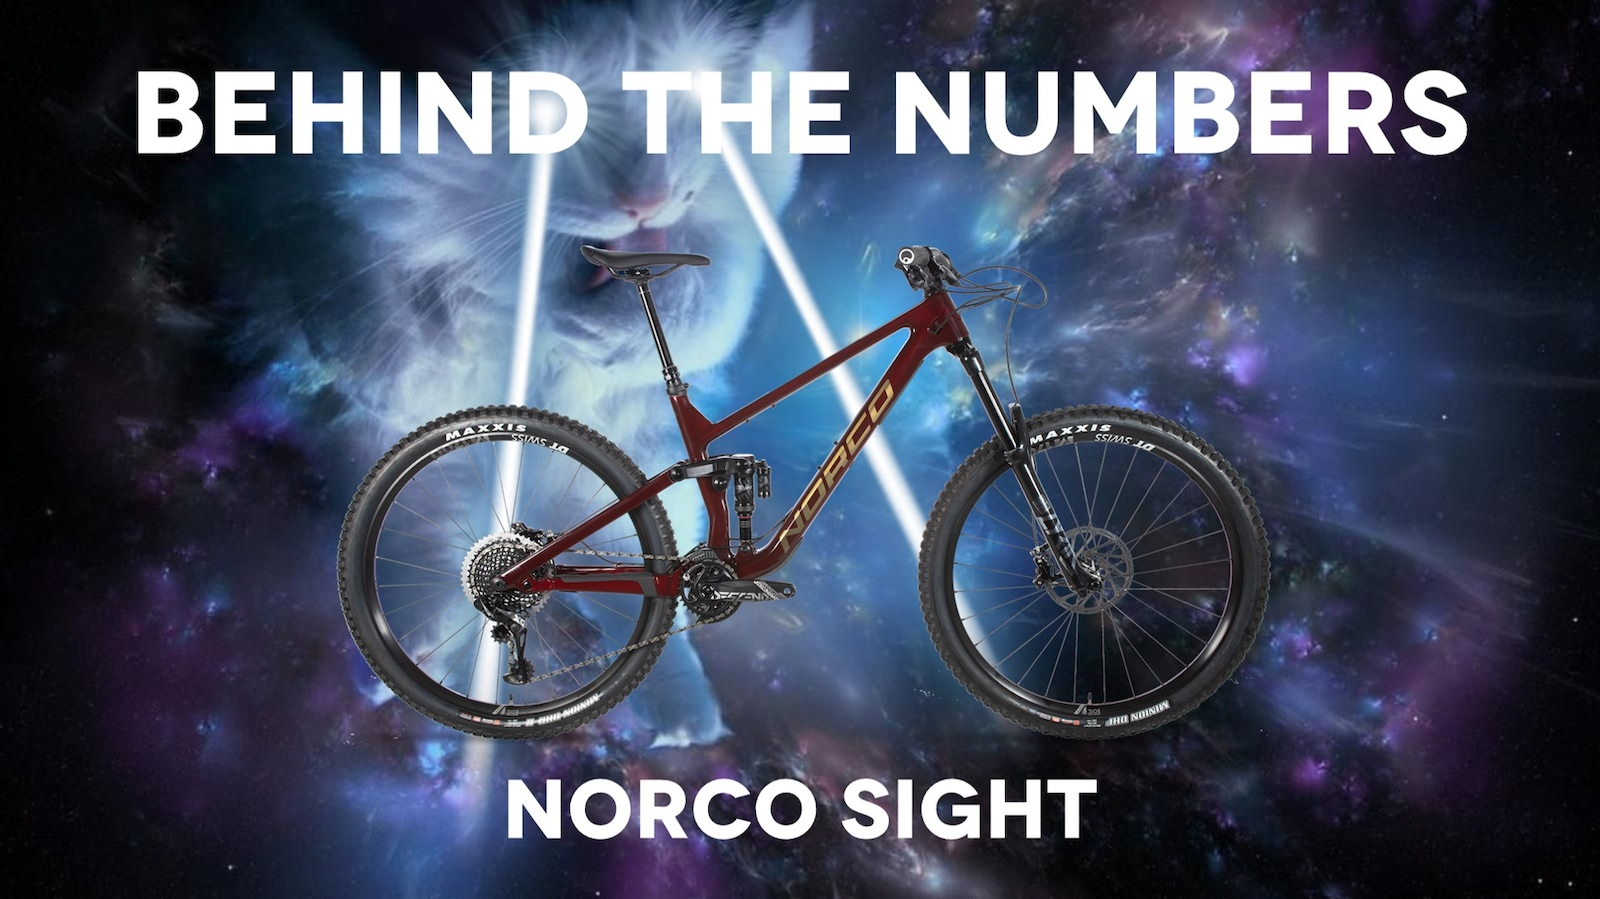 Behind the Numbers Norco Sight